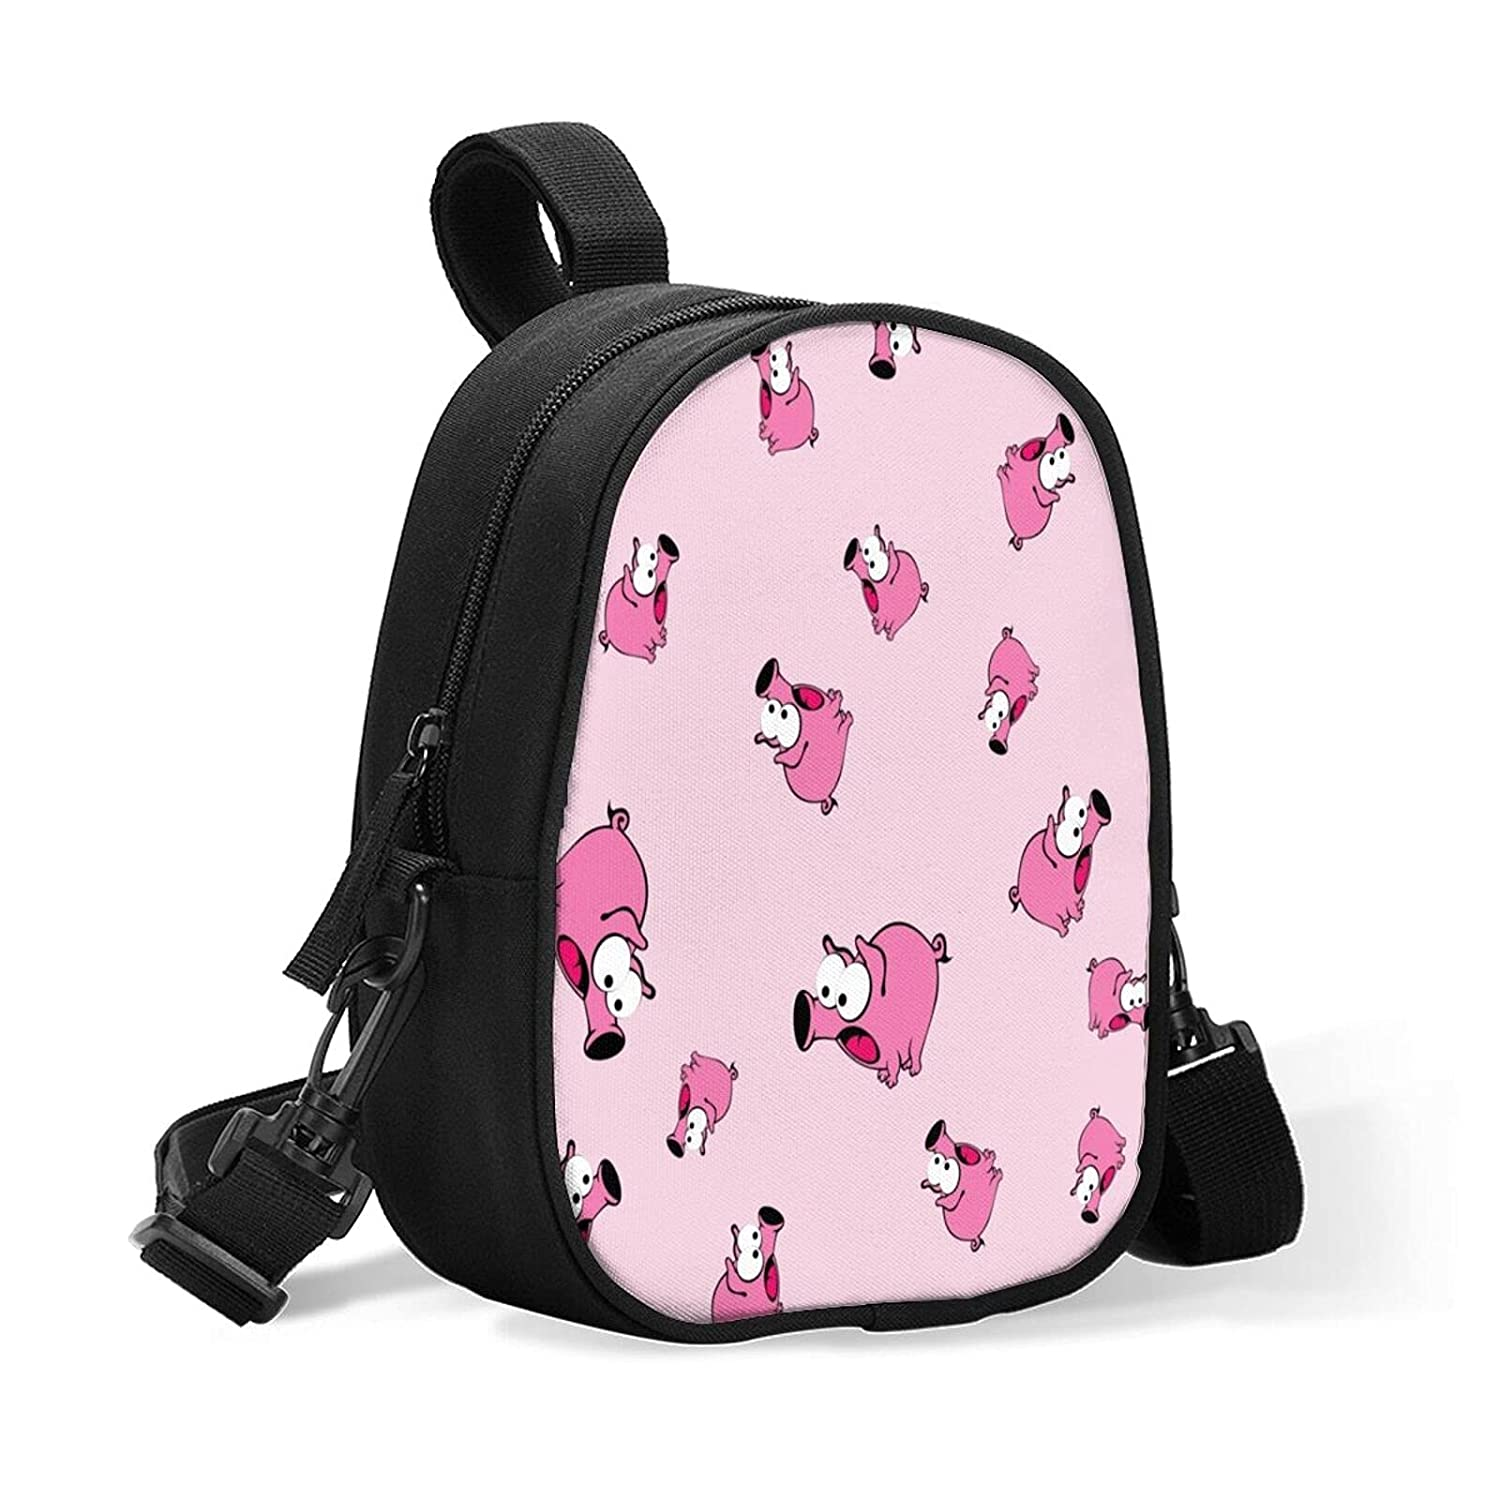 Scared Pigs Insulated Baby Bottle Bag for B Size New mail order Upgrade 70% OFF Outlet Daycare